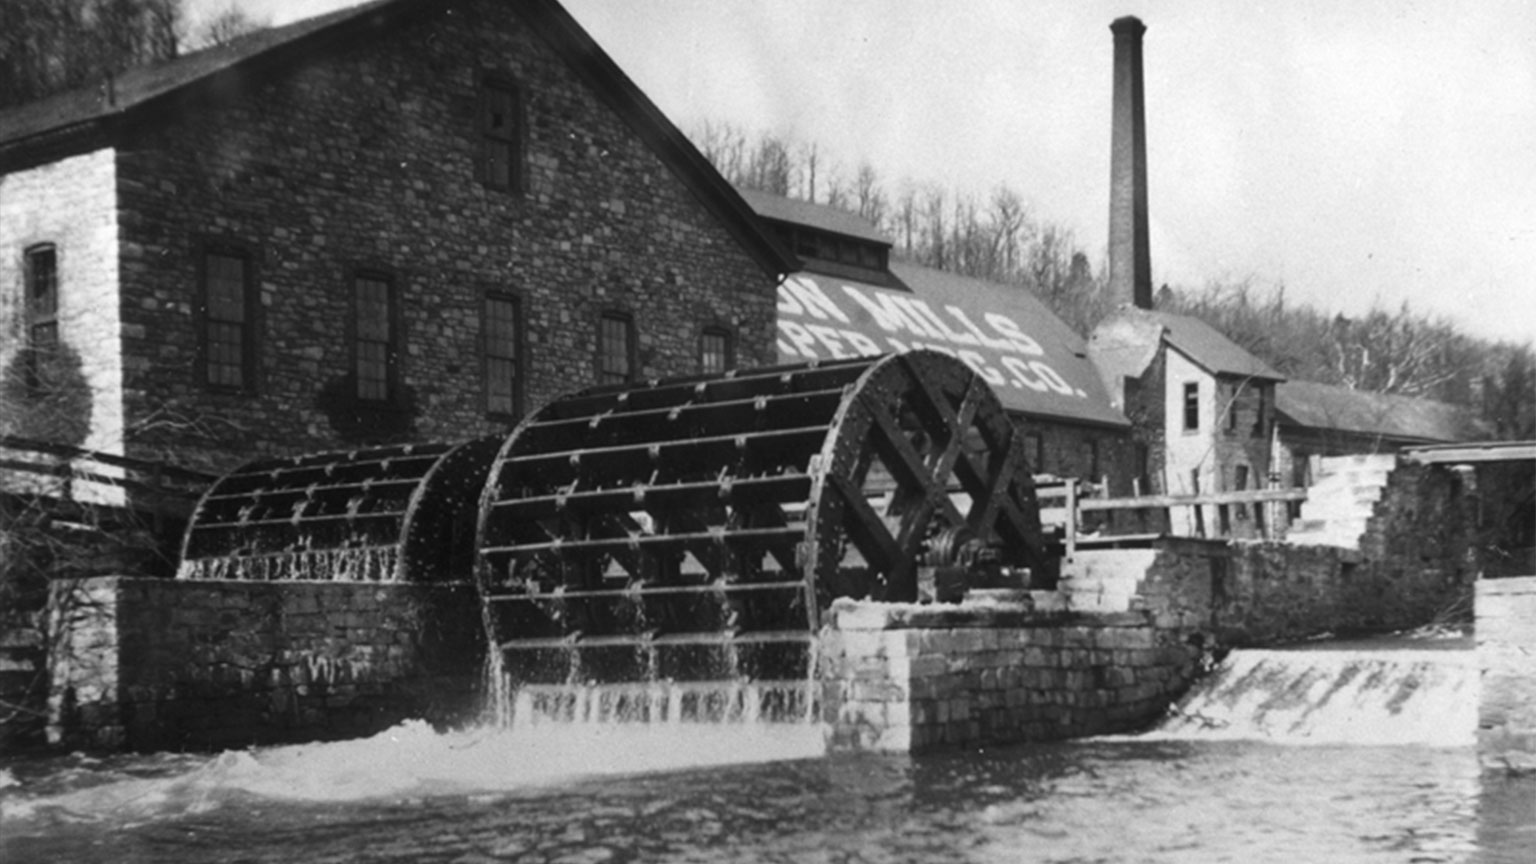 These large water wheels provided water power to mills.